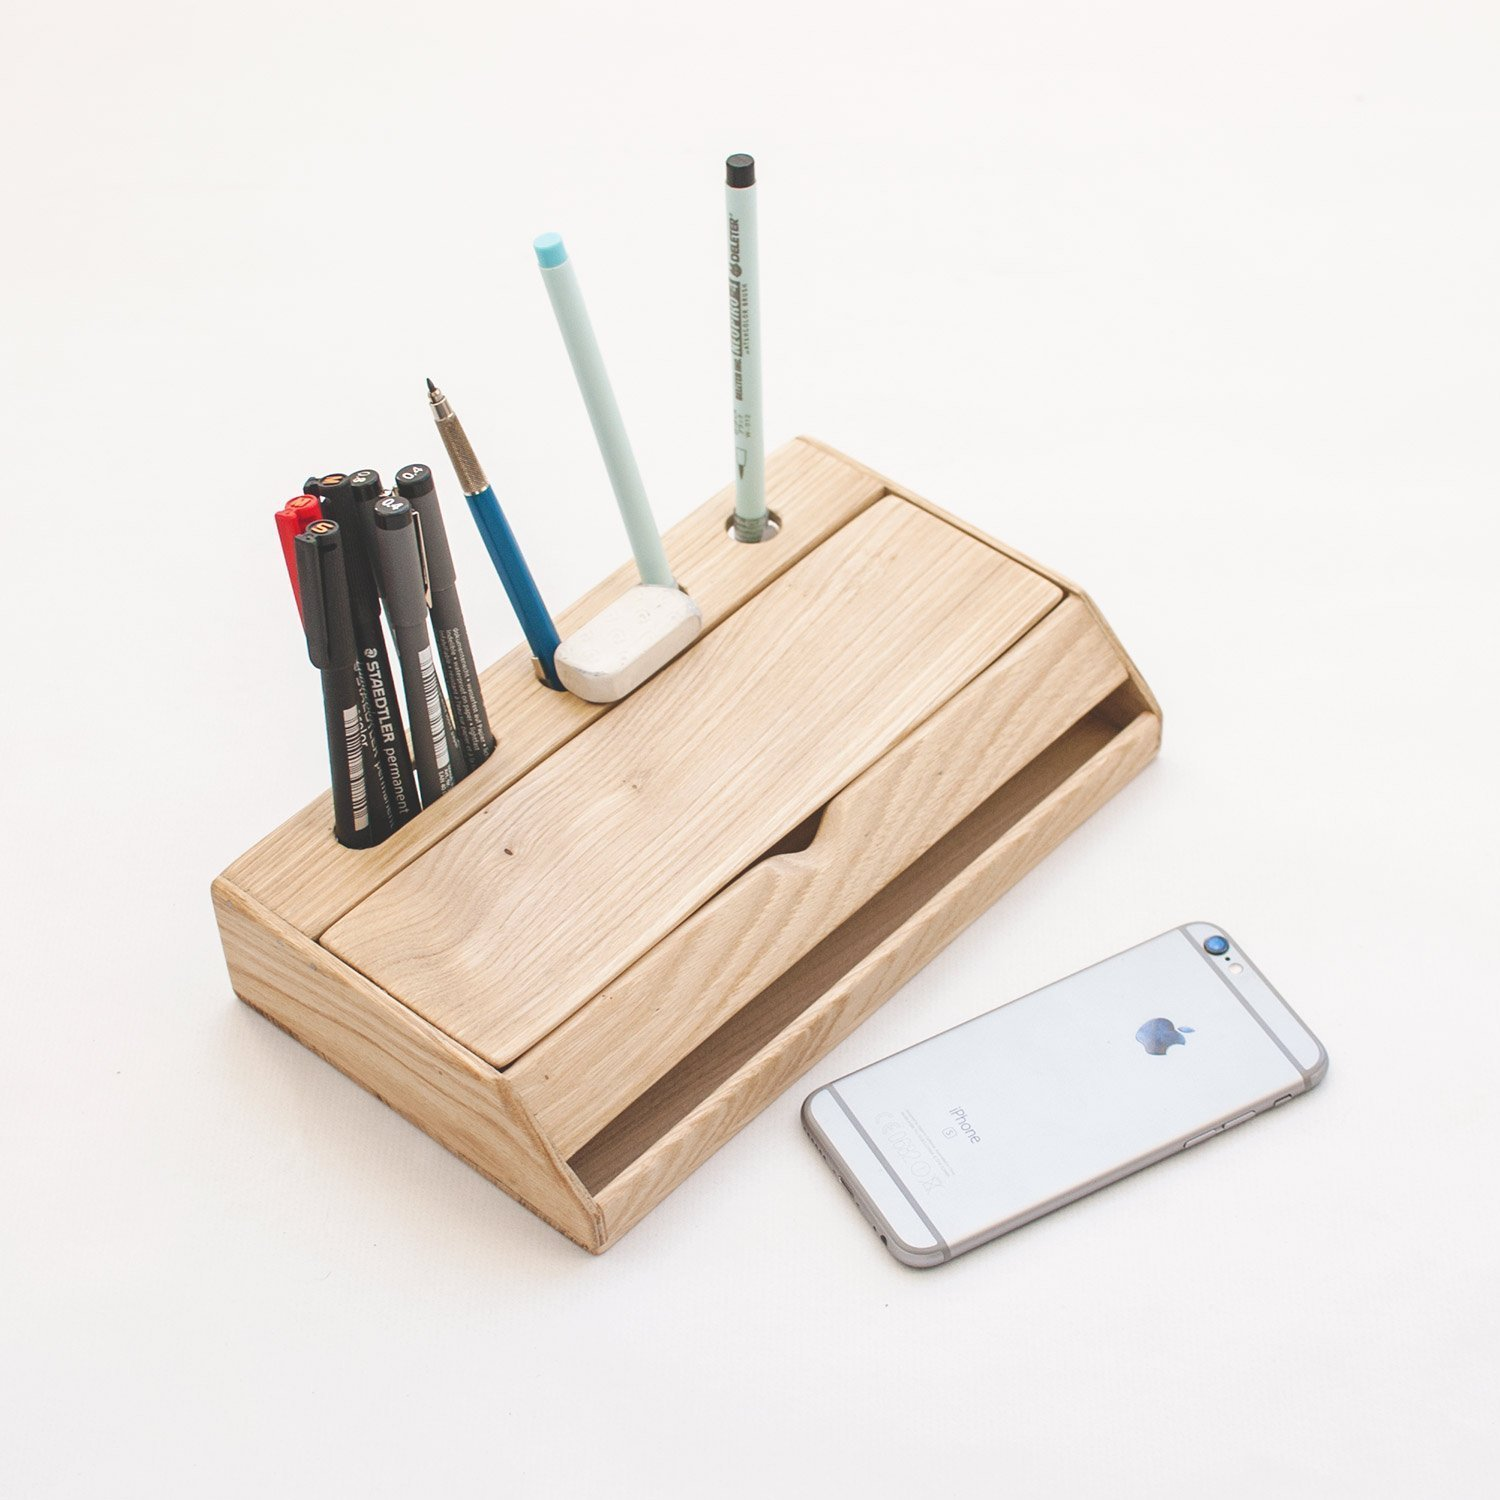 Amazon.com: Wood desk organizer - Office desk organization